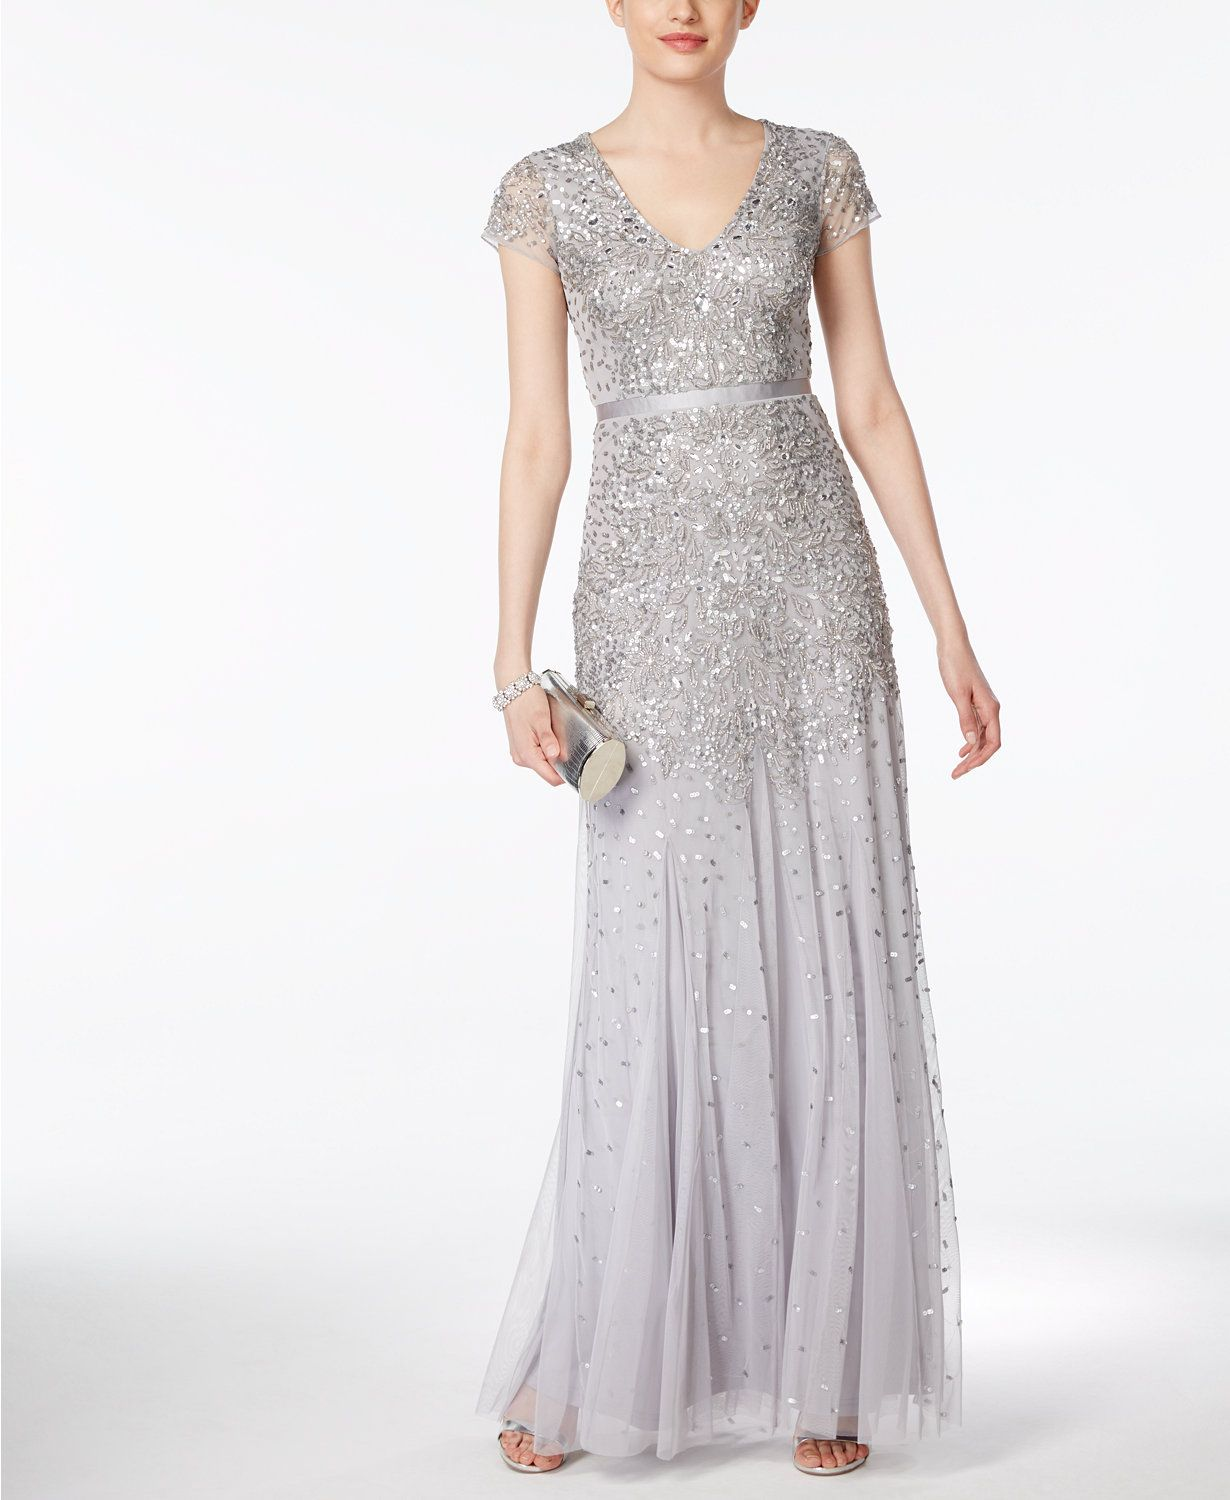 Adrianna Papell Cap-Sleeve Embellished Gown | macys.com | Dresses ...